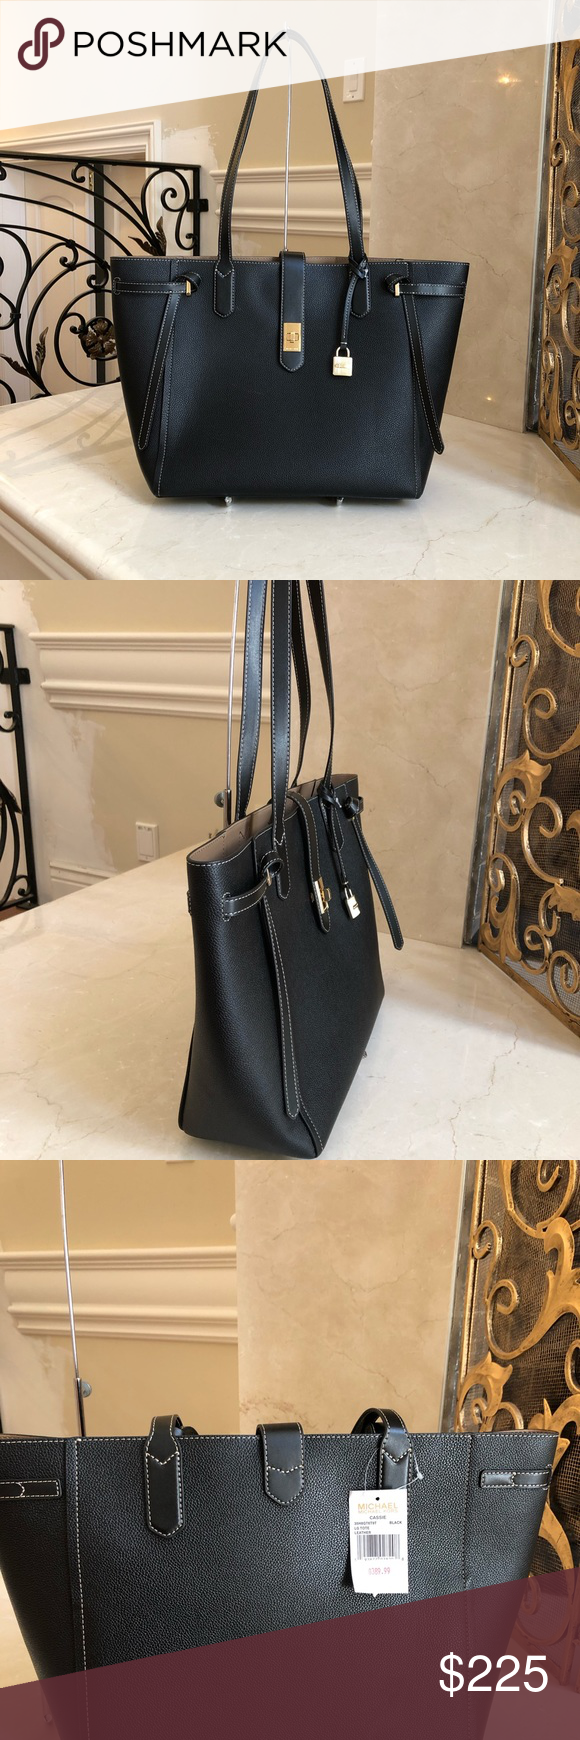 21e89498a59e Spotted while shopping on Poshmark: NWT Michael Kors Cassie large leather  tote handbag! #